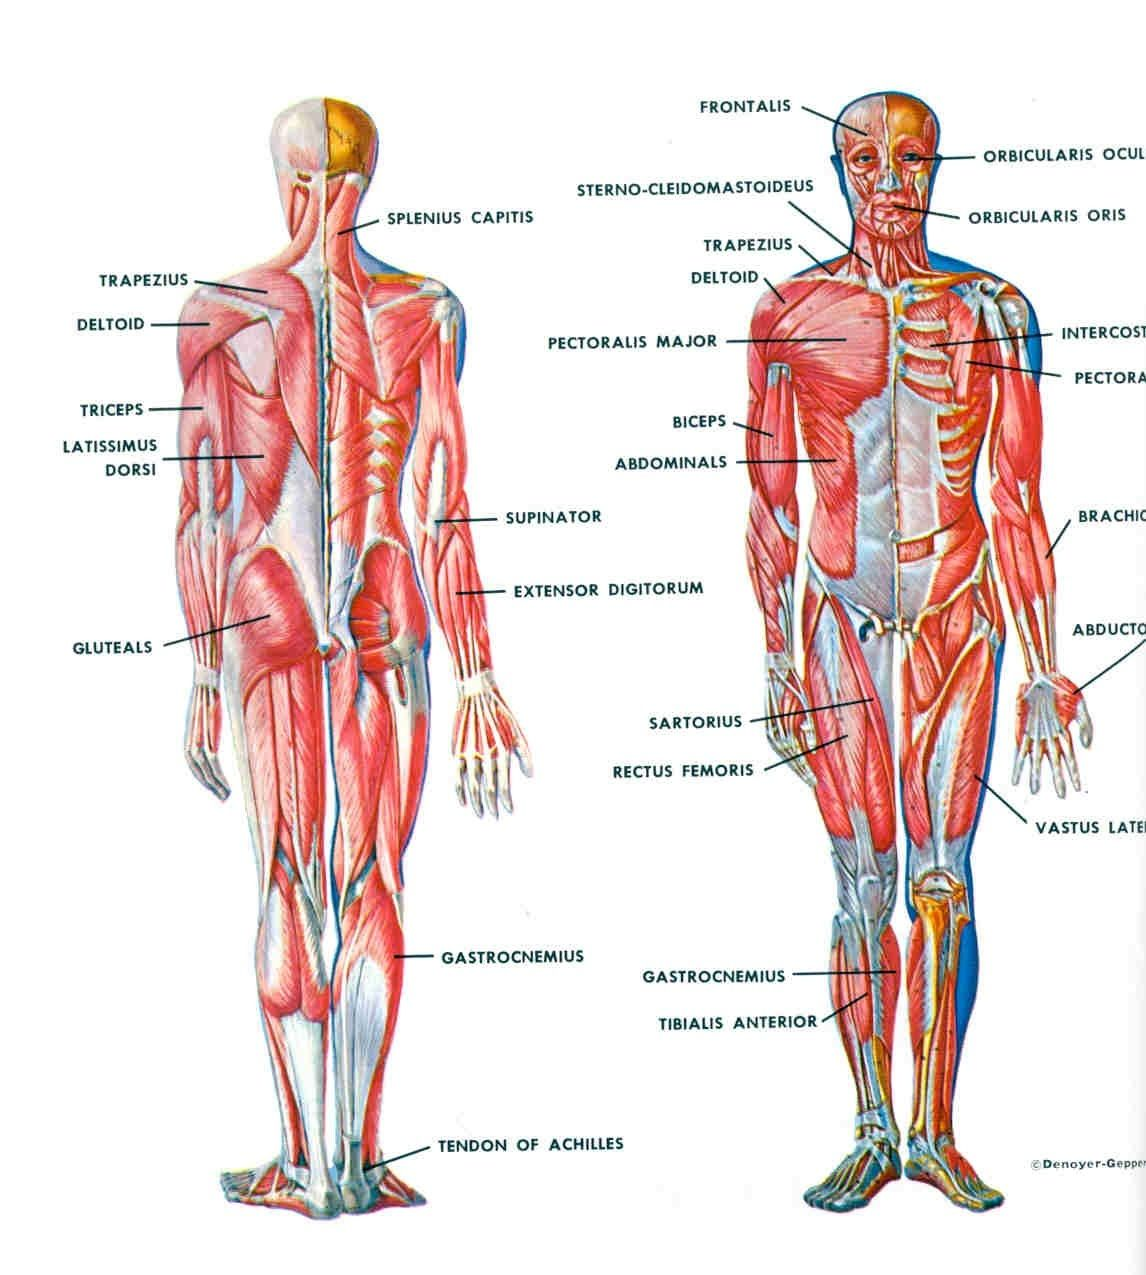 Workbooks anatomy and physiology coloring workbook muscles : human-muscle-body-diagram.jpg (1146×1275) | บันทึก | Pinterest ...